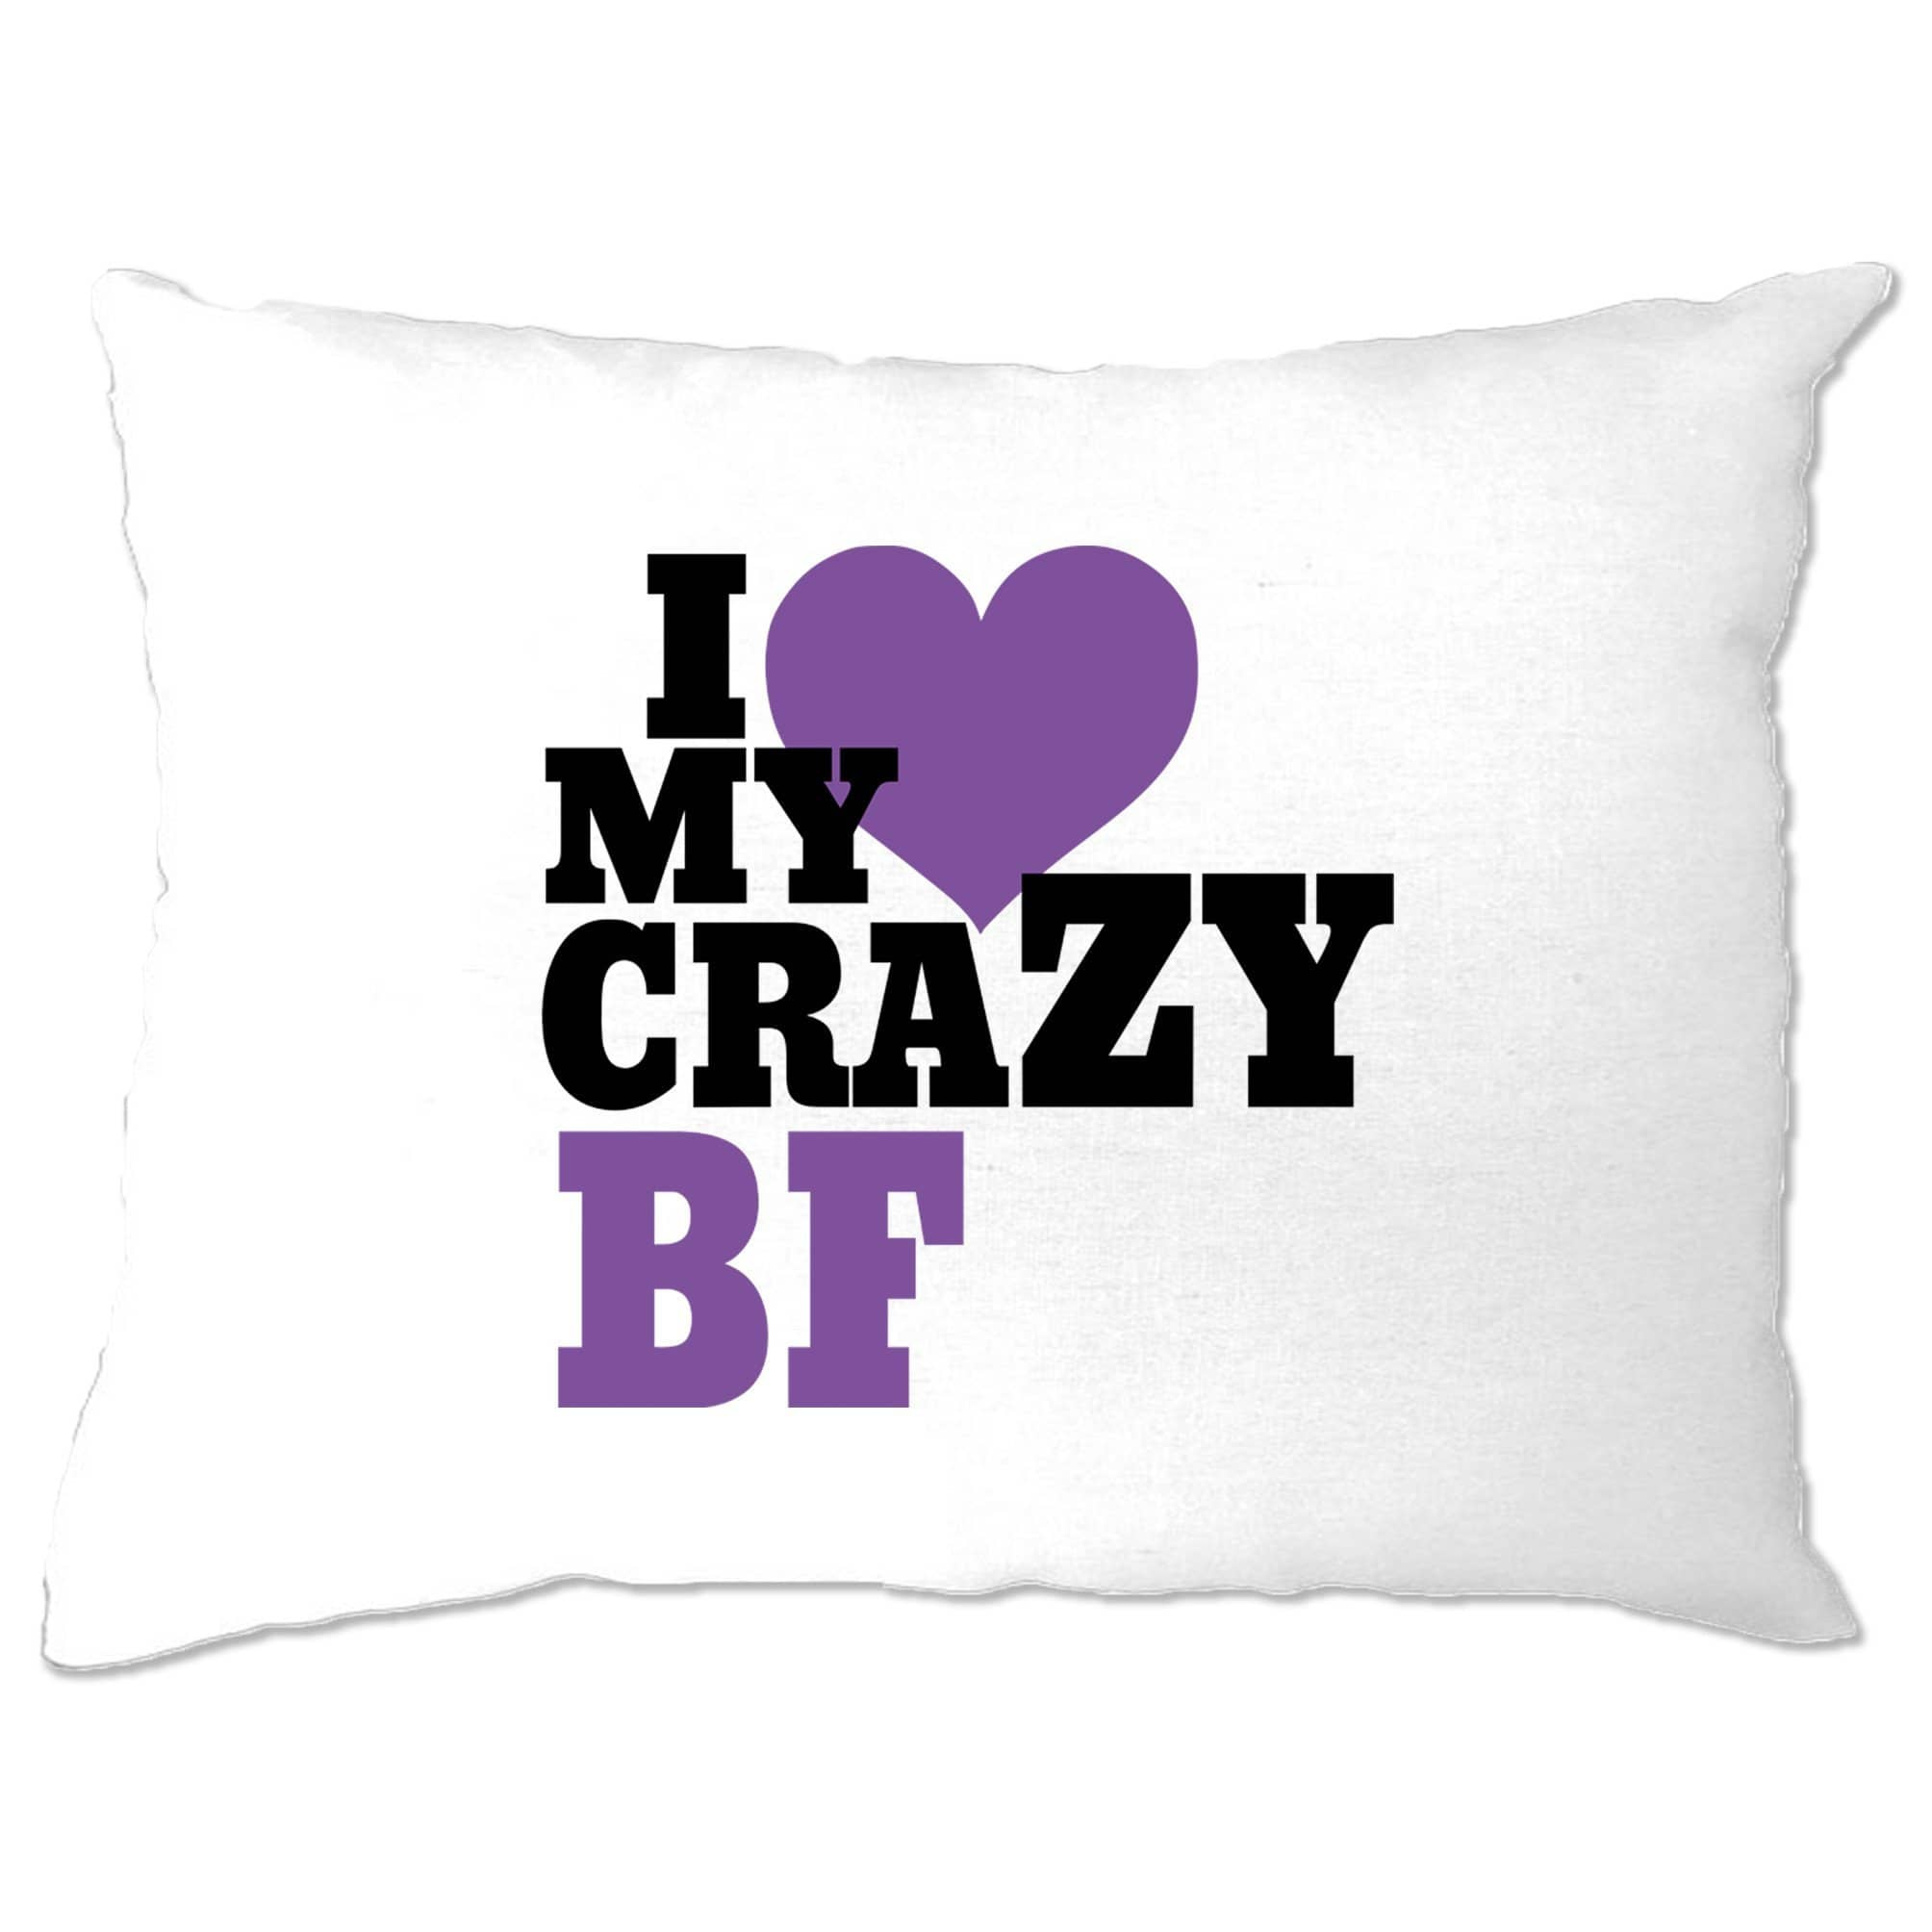 Fun Couples Pillow Case I Love My Crazy Boyfriend